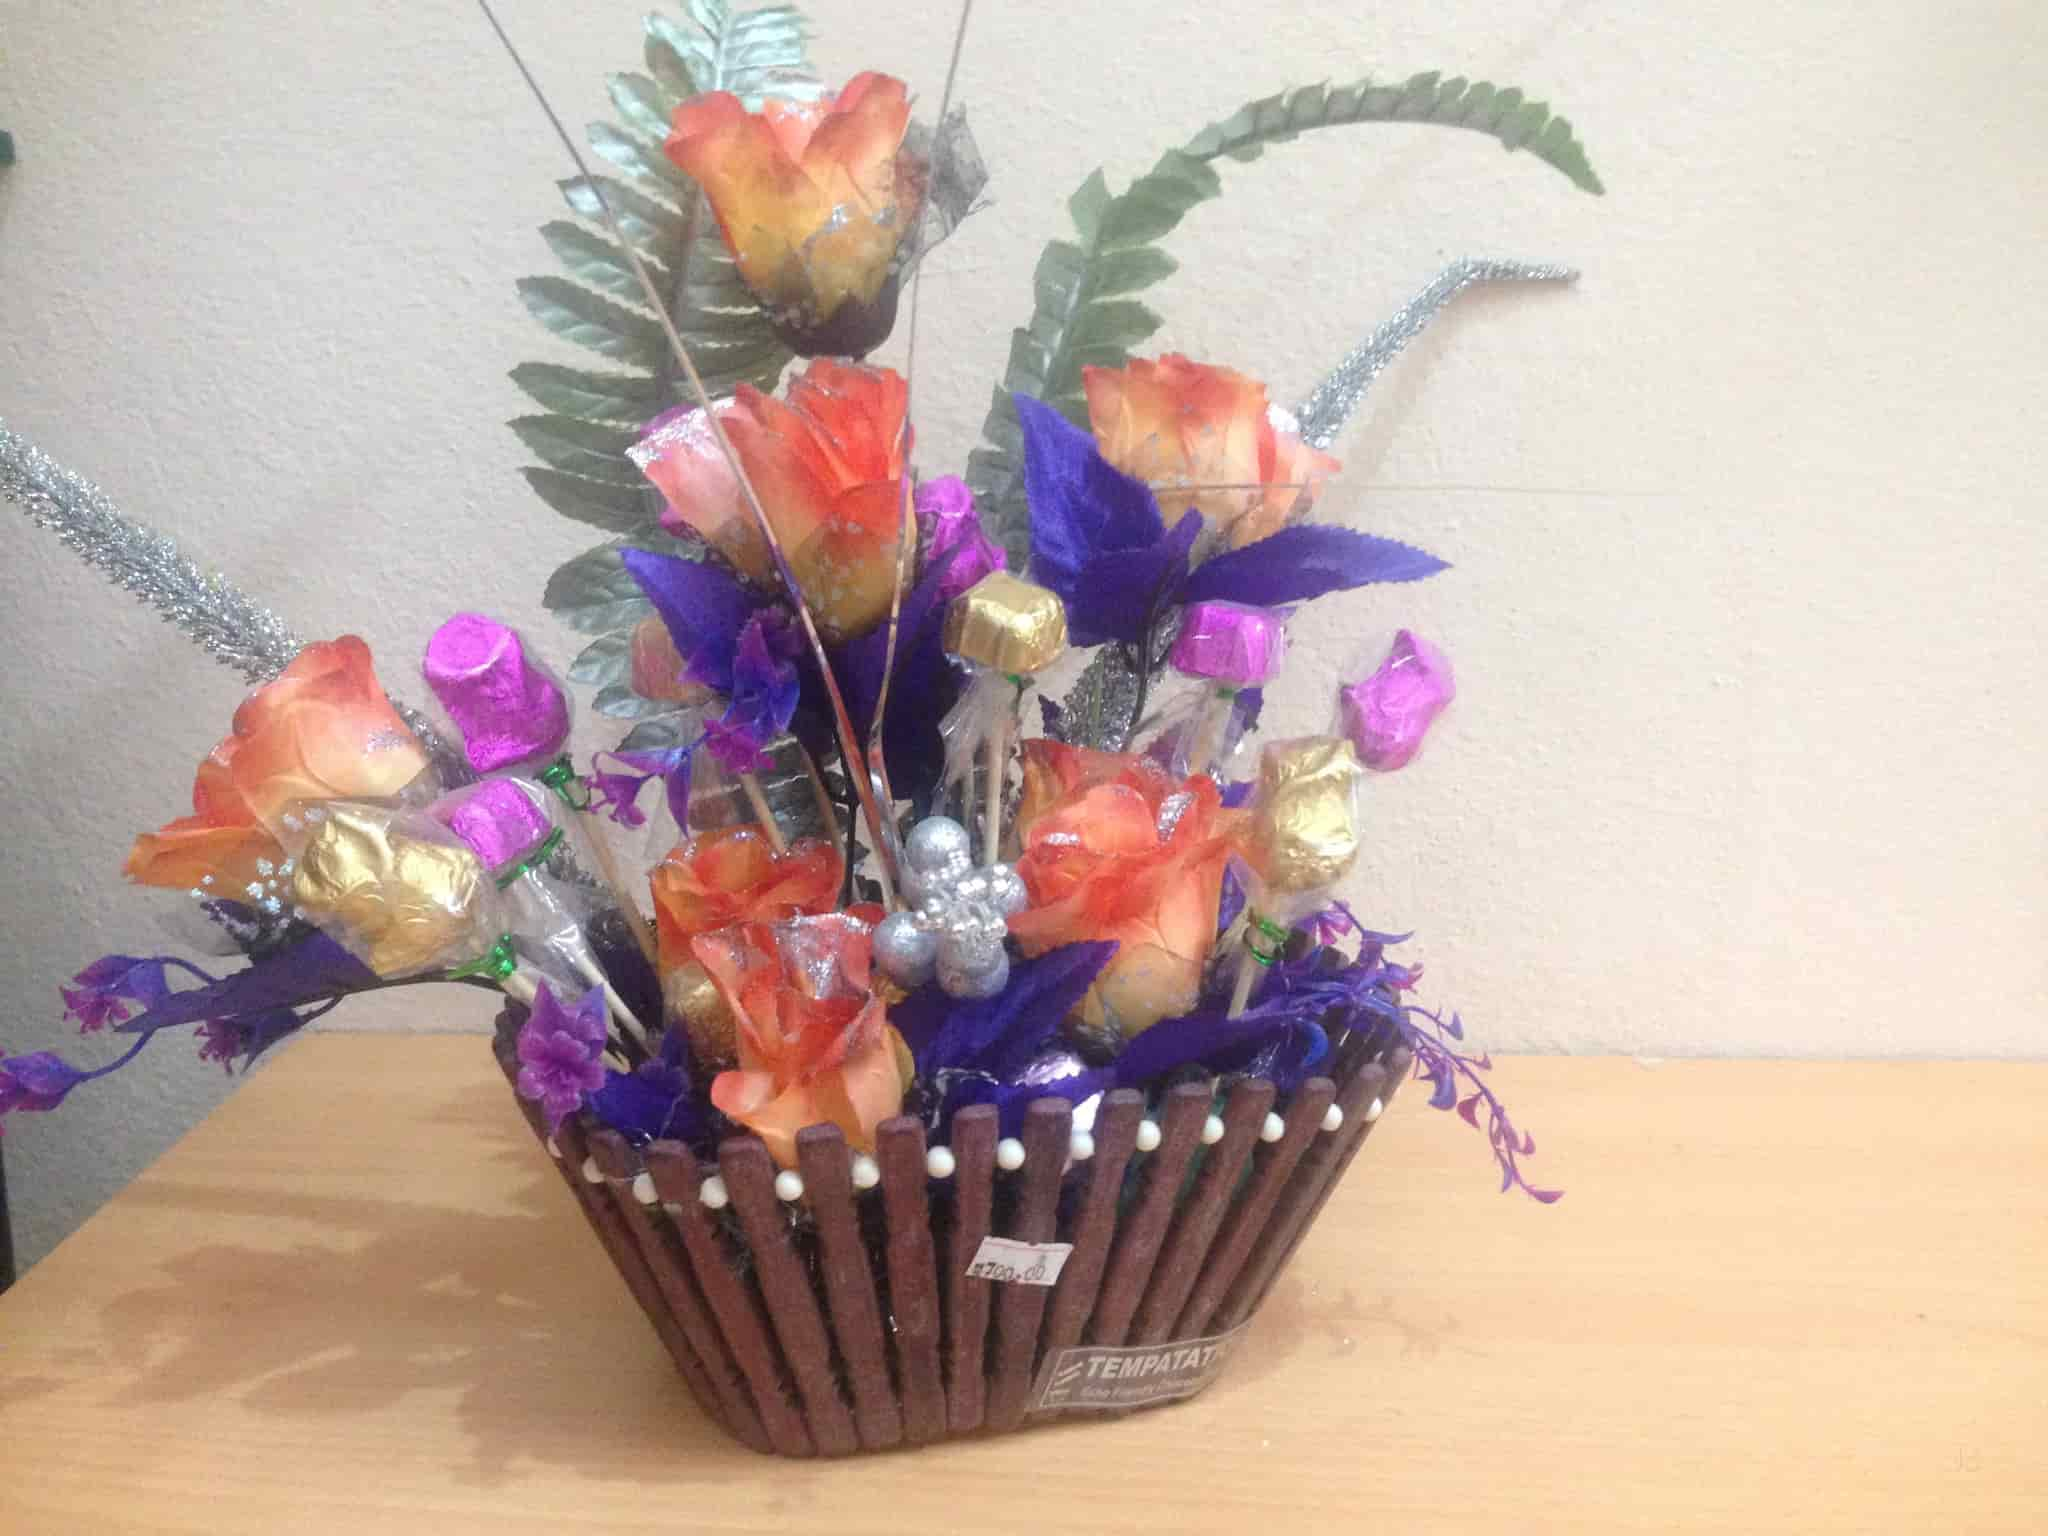 Outstanding Chocolate Flower Bouquet Tutorial Embellishment - Images ...